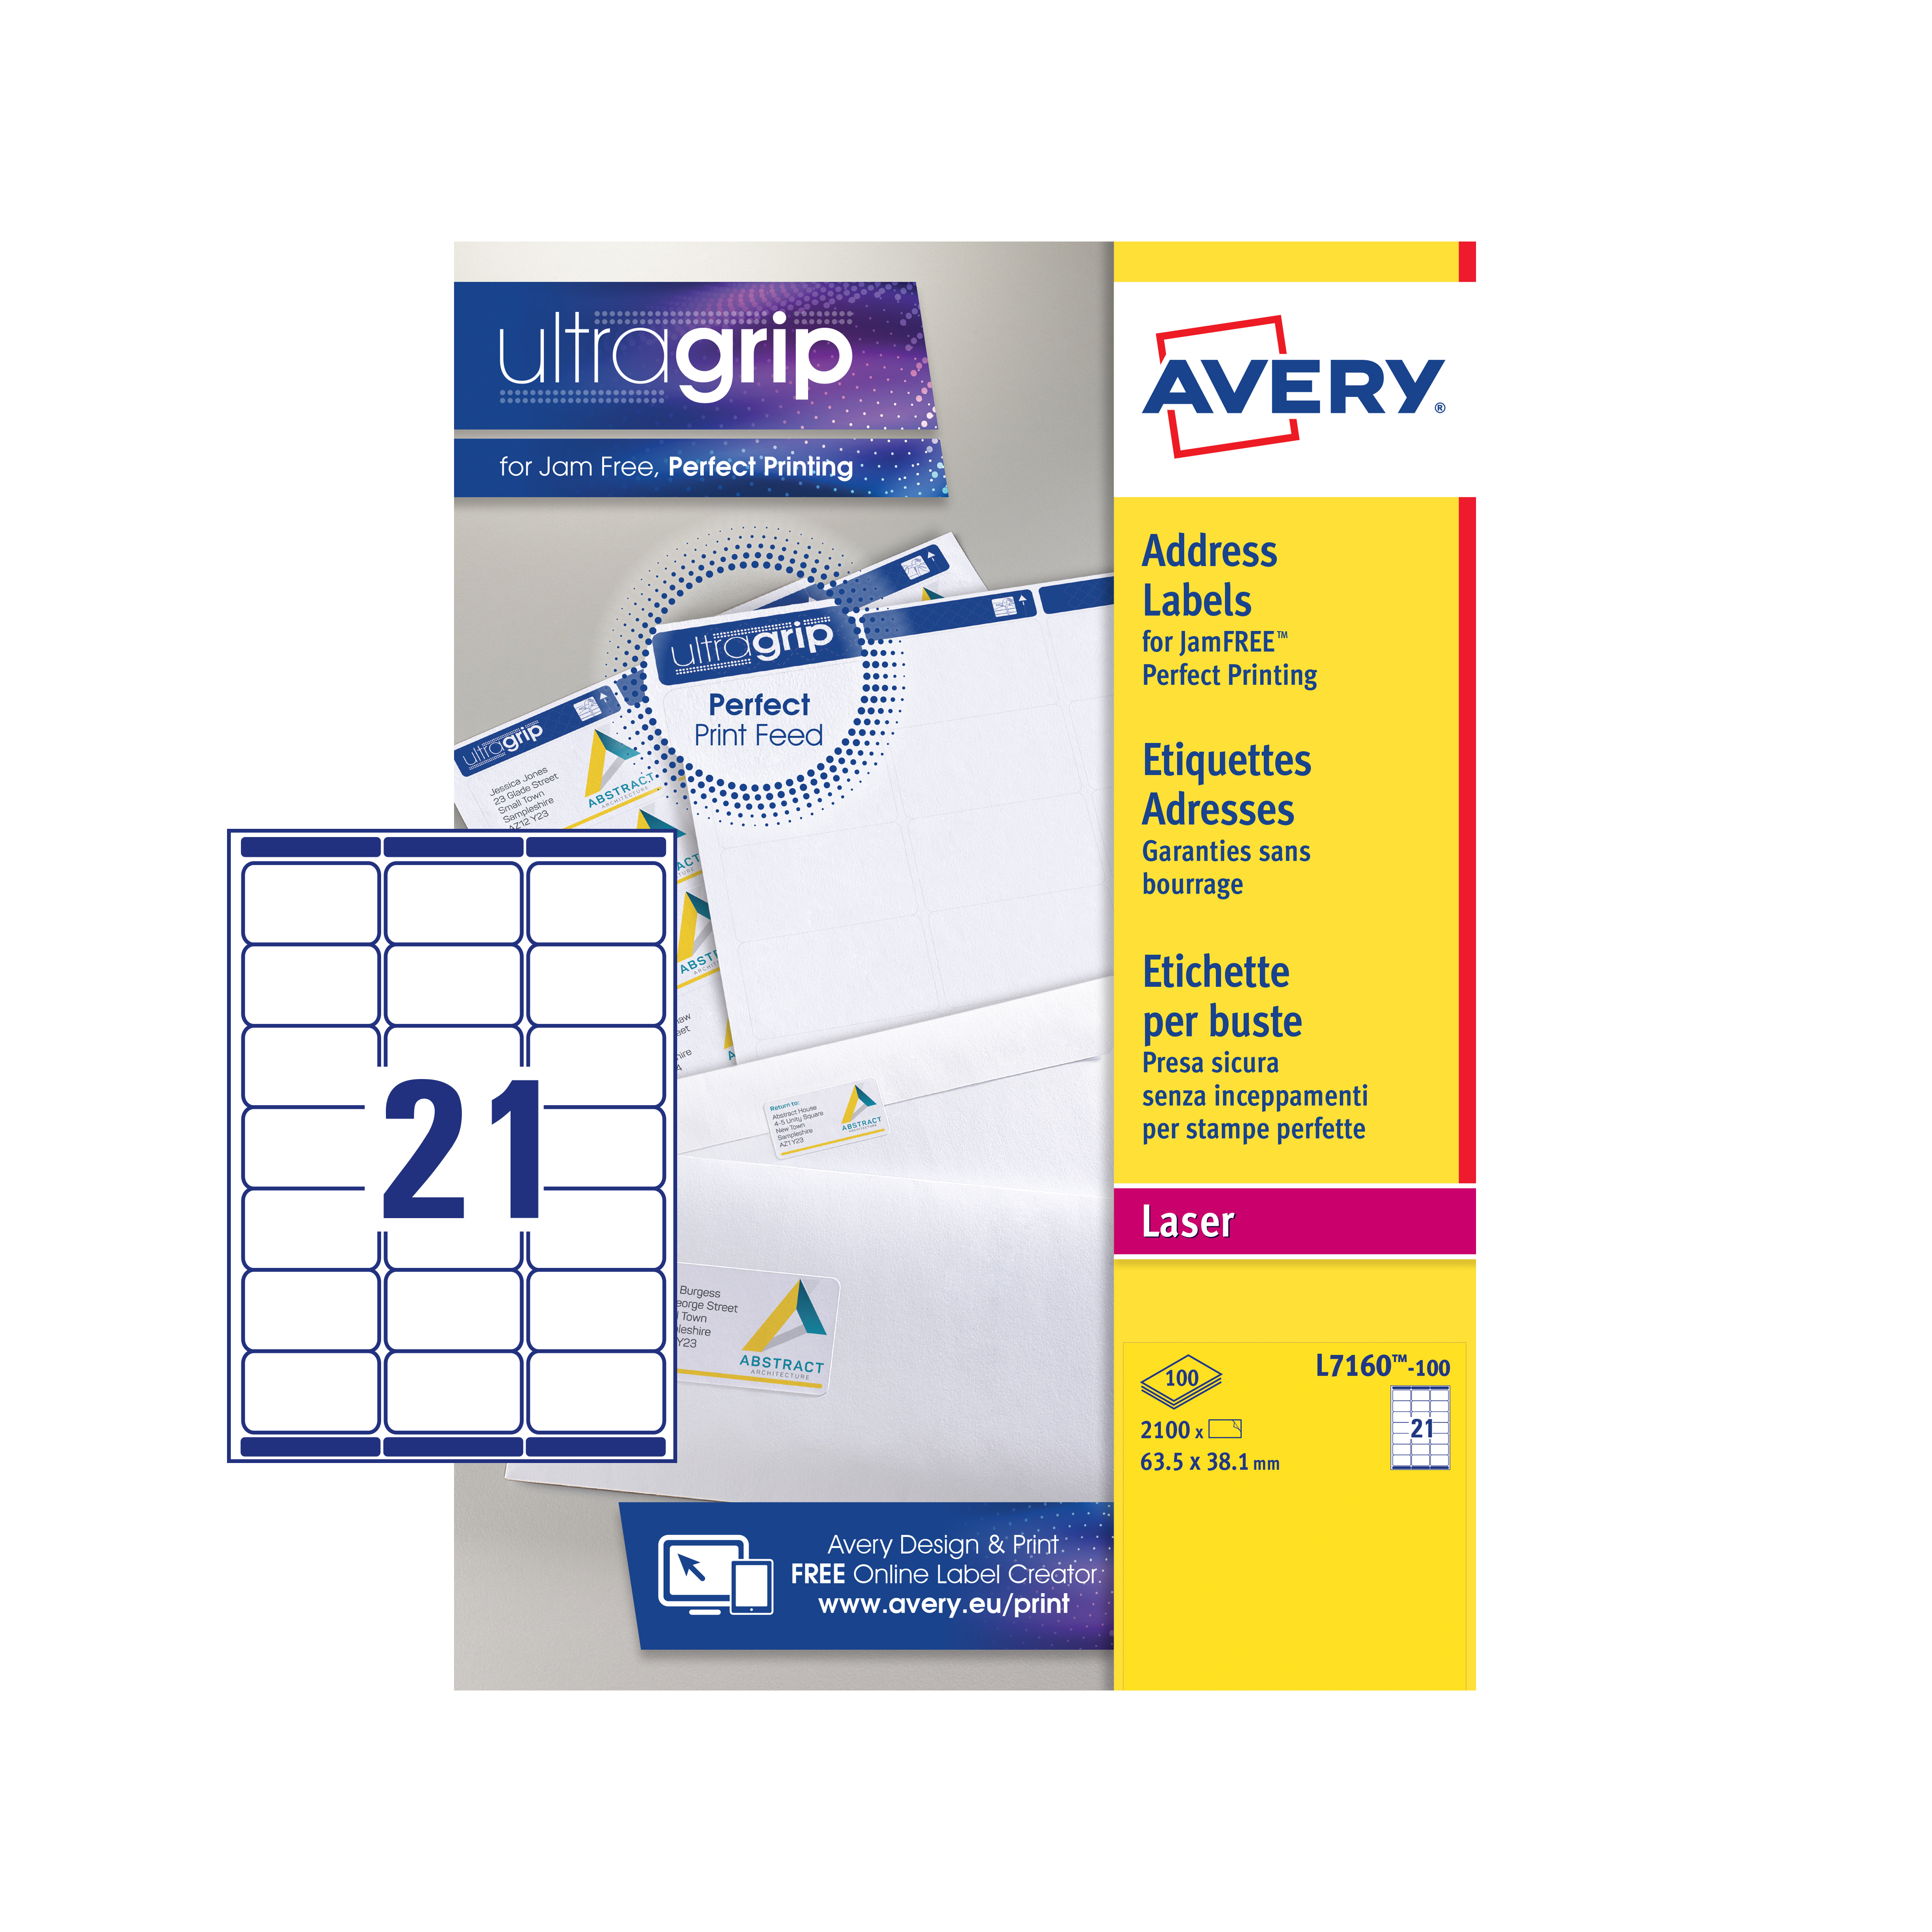 Avery Addressing Labels Laser Jam-free 21 per Sheet 63.5x38.1mm White Ref L7160-100 2100 Labels